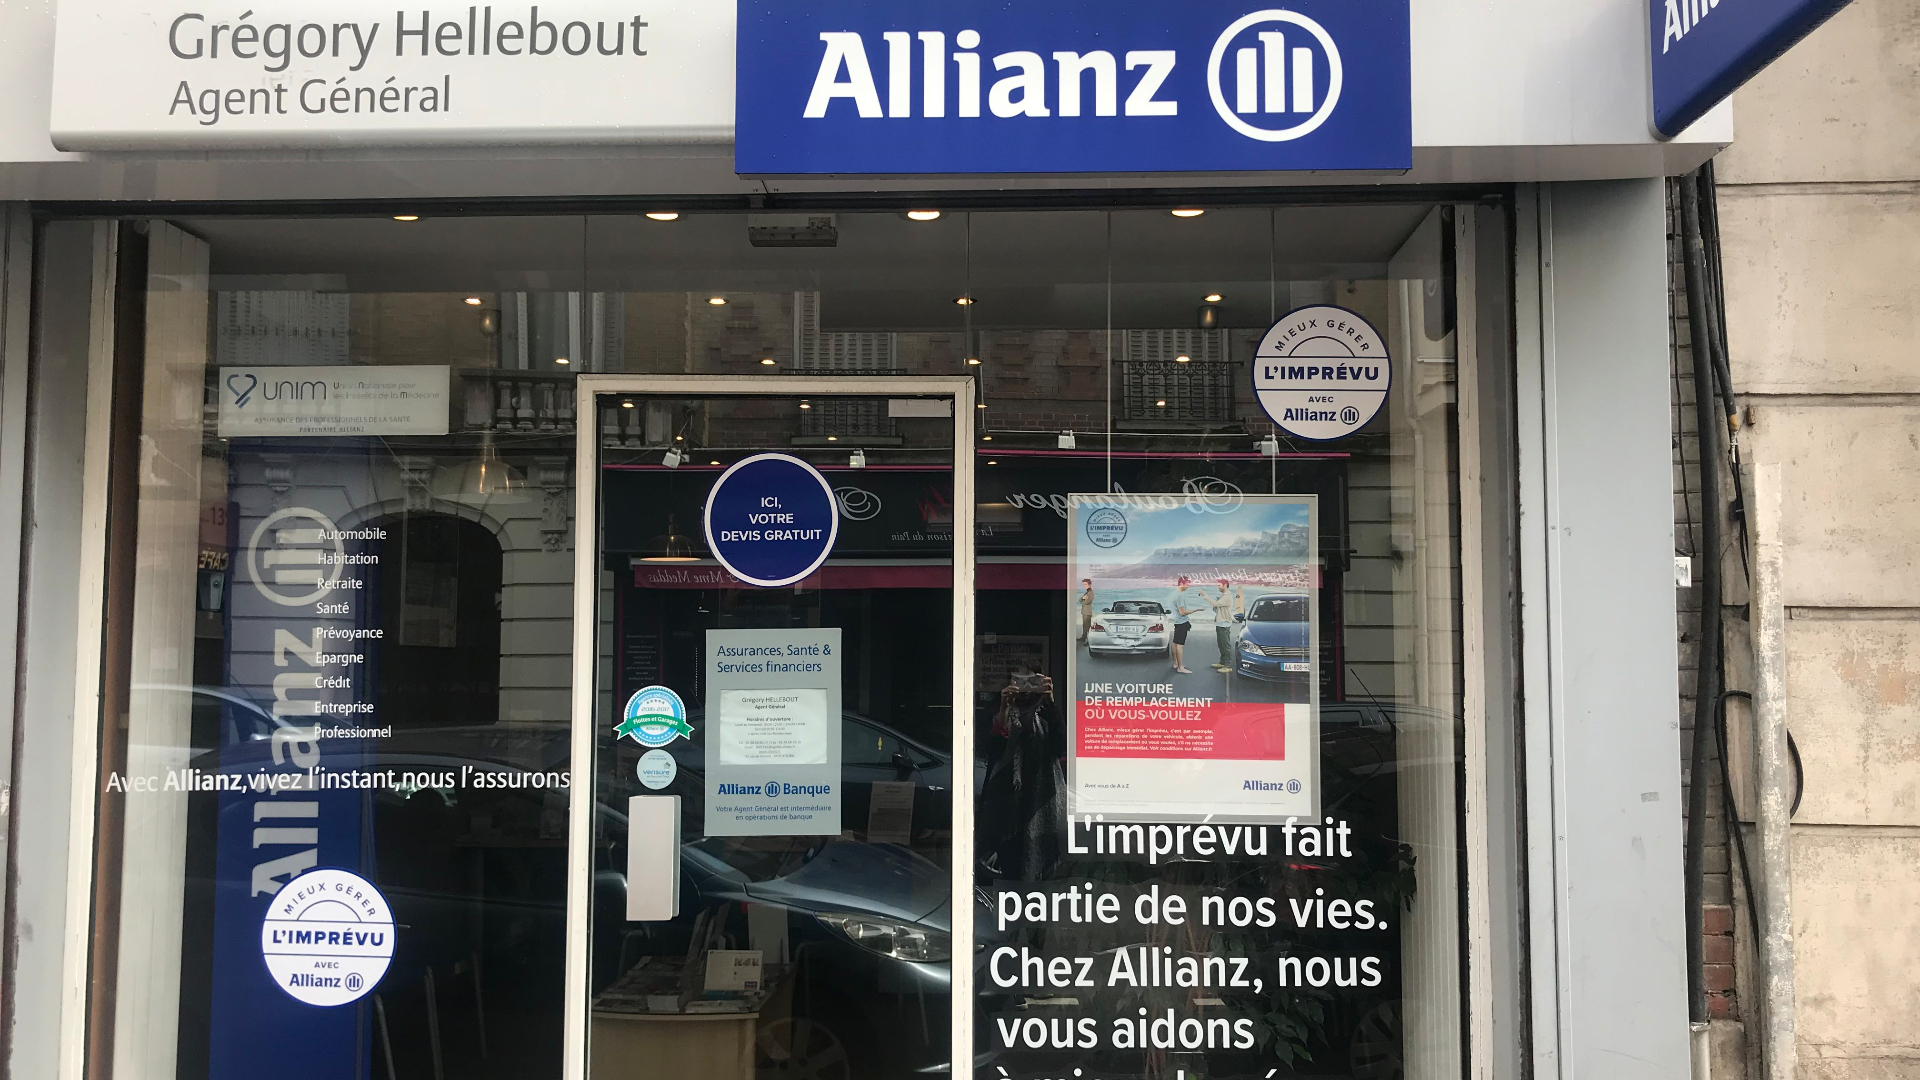 Allianz AULNAY SOUS BOIS - Gregory HELLEBOUT